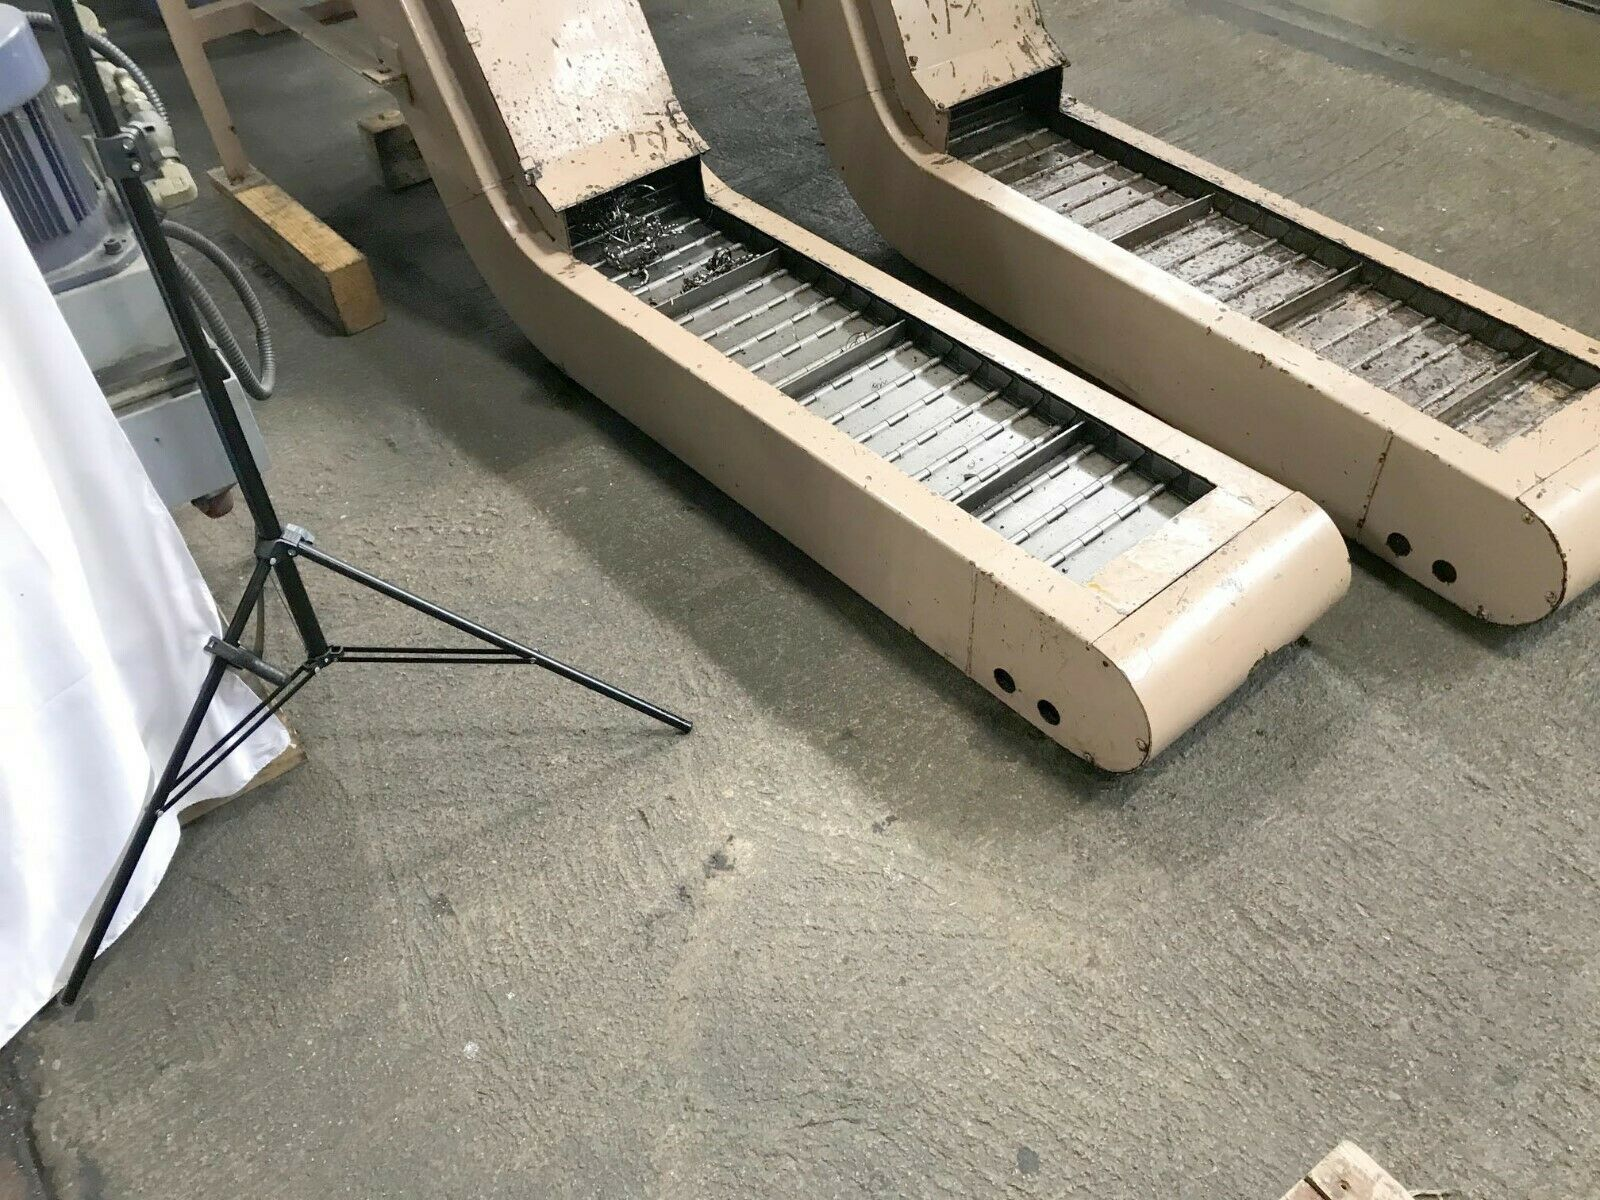 """MAYFRAN HEAVY DUTY CHIP CONVEYOR, 11"""" x 45"""" Chip Opening, 8-1/2"""" High x 16-1/2"""" Wide x 53"""" Long in the machine, 43"""" Discharge Height, Drain Thru Coolant Style, 113"""" OA Length."""